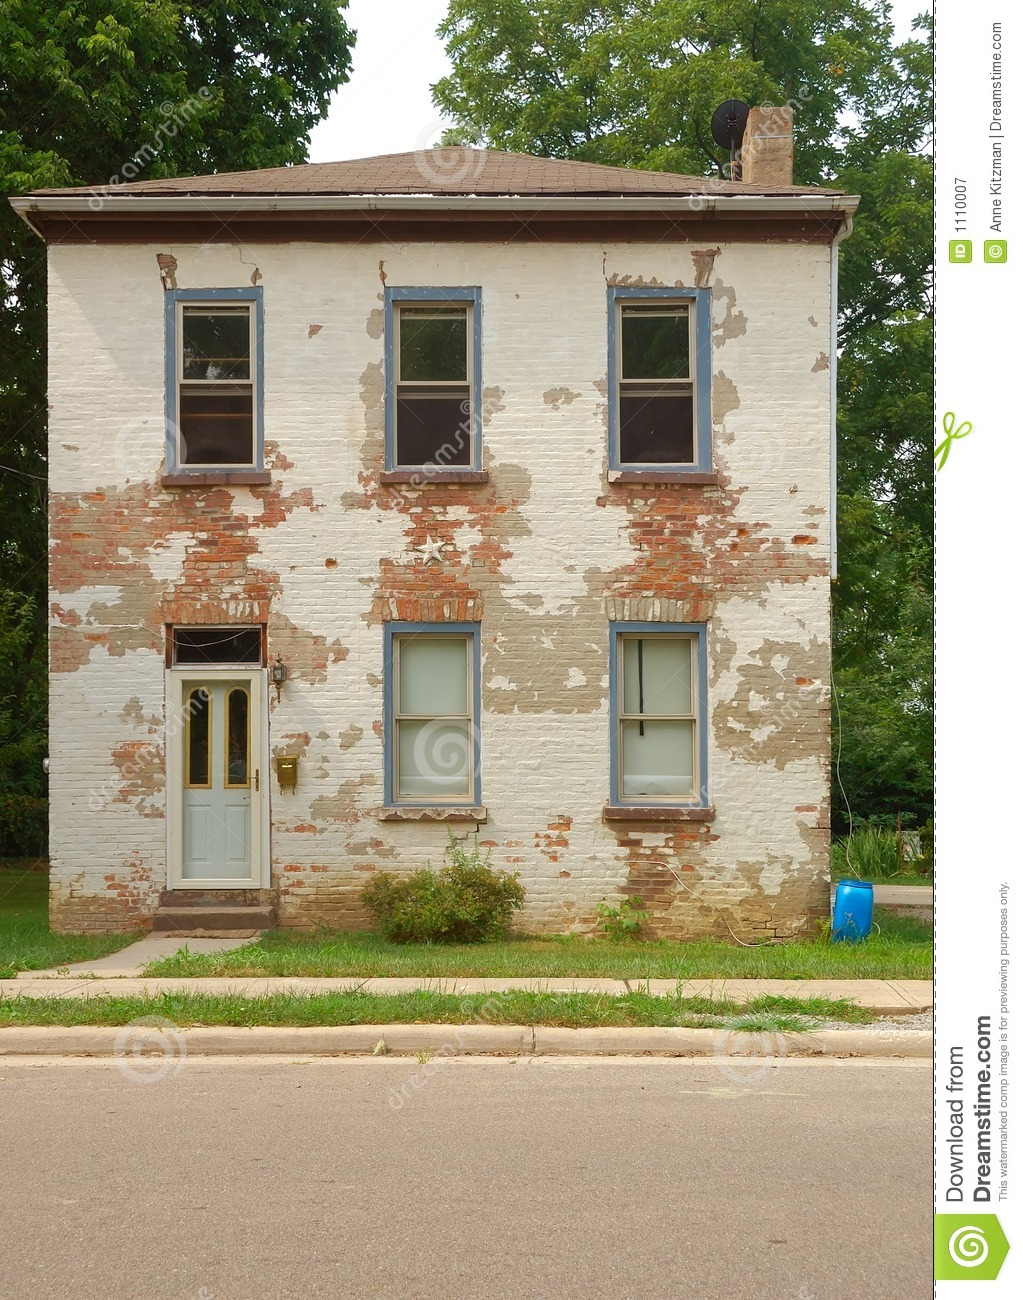 Two Story Brick House Royalty Free Stock Photography